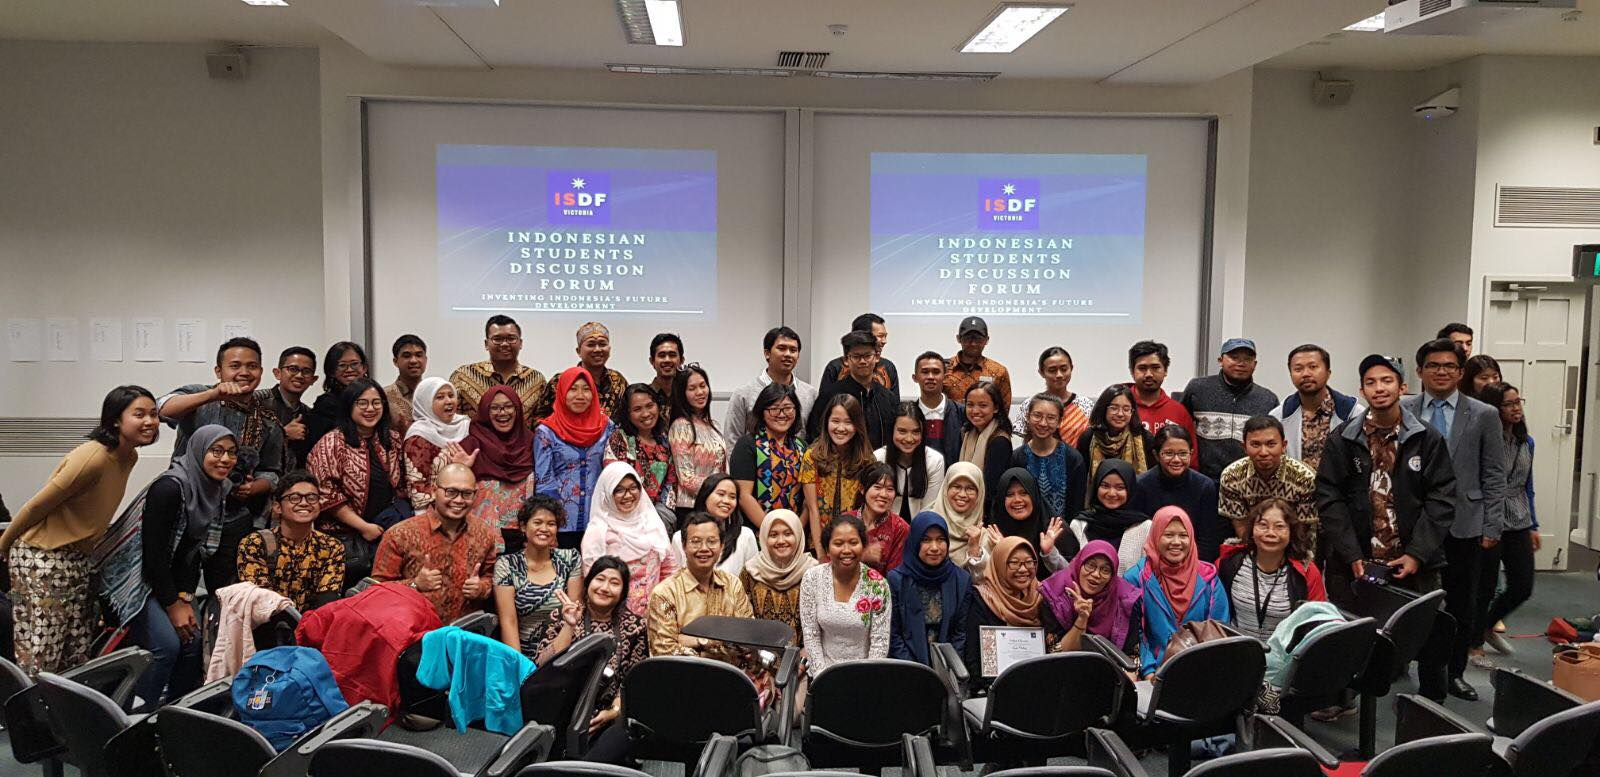 Para panitia acara Indonesian Students Discussion Forum (ISDF) 2018 Melbourne Australia